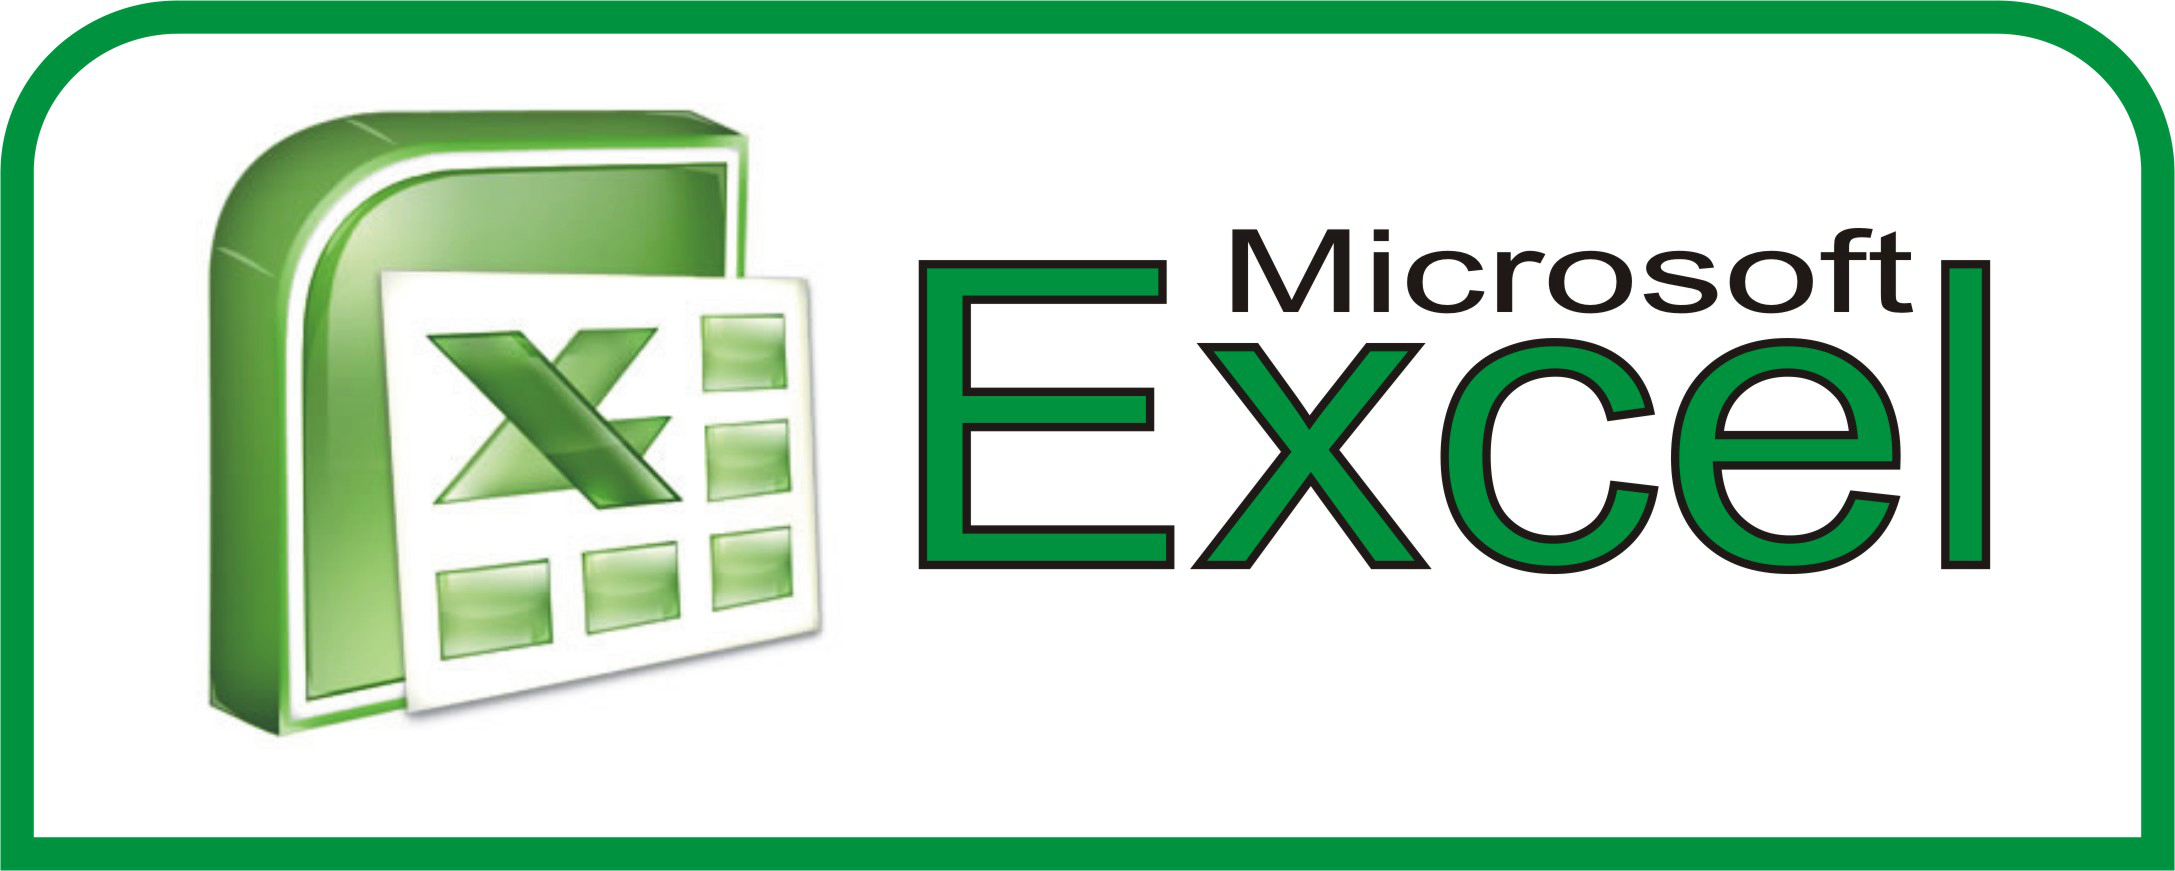 Ediblewildsus  Outstanding  Excel Shortcuts You Probably Didnt Know About  Techdissected With Remarkable How To Calculate Wacc In Excel Besides Unlock Macro Password In Excel Furthermore Copy Formula Excel With Divine Excel Pipe Delimited Also Microsoft Excel  Formulas Pdf In Addition Custom Filter Excel And What Is Menu Bar In Excel As Well As Microsoft Excel Practice Additionally Histogram Excel  From Techdissectedcom With Ediblewildsus  Remarkable  Excel Shortcuts You Probably Didnt Know About  Techdissected With Divine How To Calculate Wacc In Excel Besides Unlock Macro Password In Excel Furthermore Copy Formula Excel And Outstanding Excel Pipe Delimited Also Microsoft Excel  Formulas Pdf In Addition Custom Filter Excel From Techdissectedcom